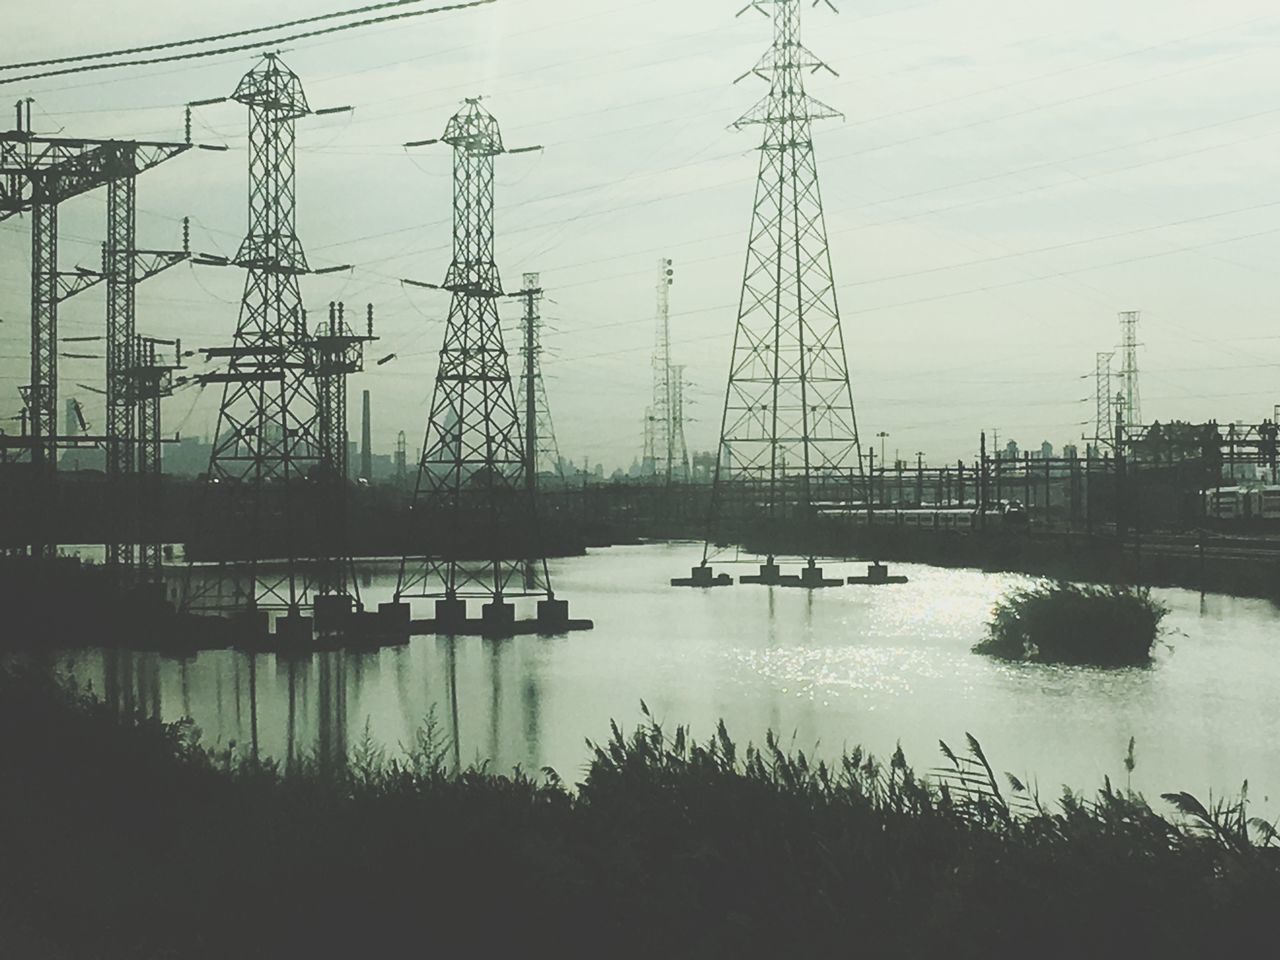 Energy Grid Energy Energy Tower Industrial Landscapes Water Train Electric Grid Electricity  Electric Tower